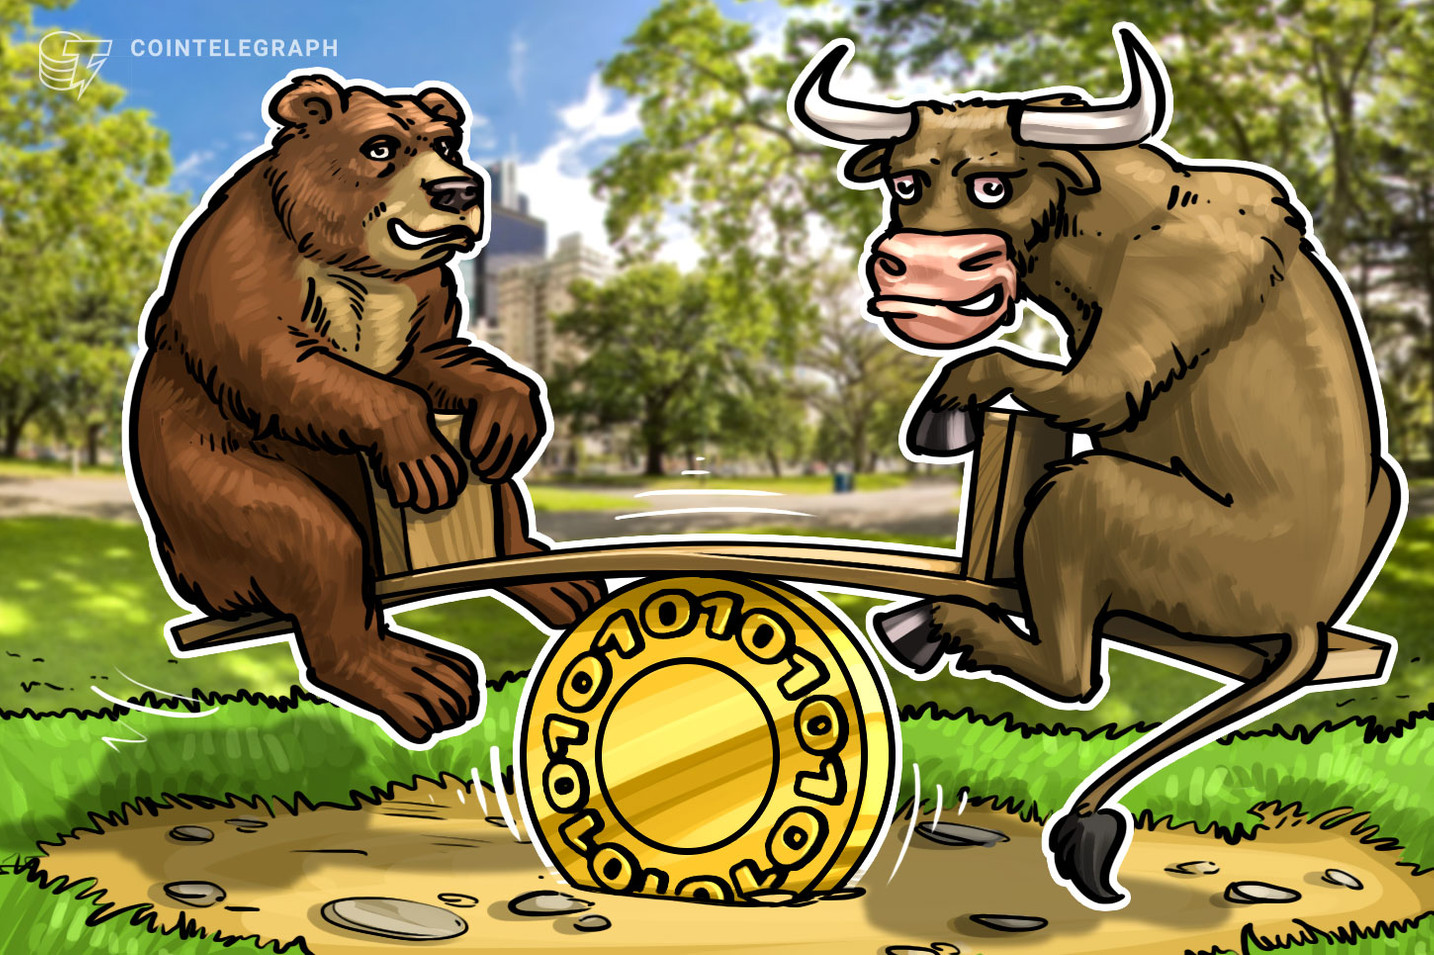 CEO of Top Crypto Derivatives Platform: Crypto Bear Market Could Last Another 18 Months